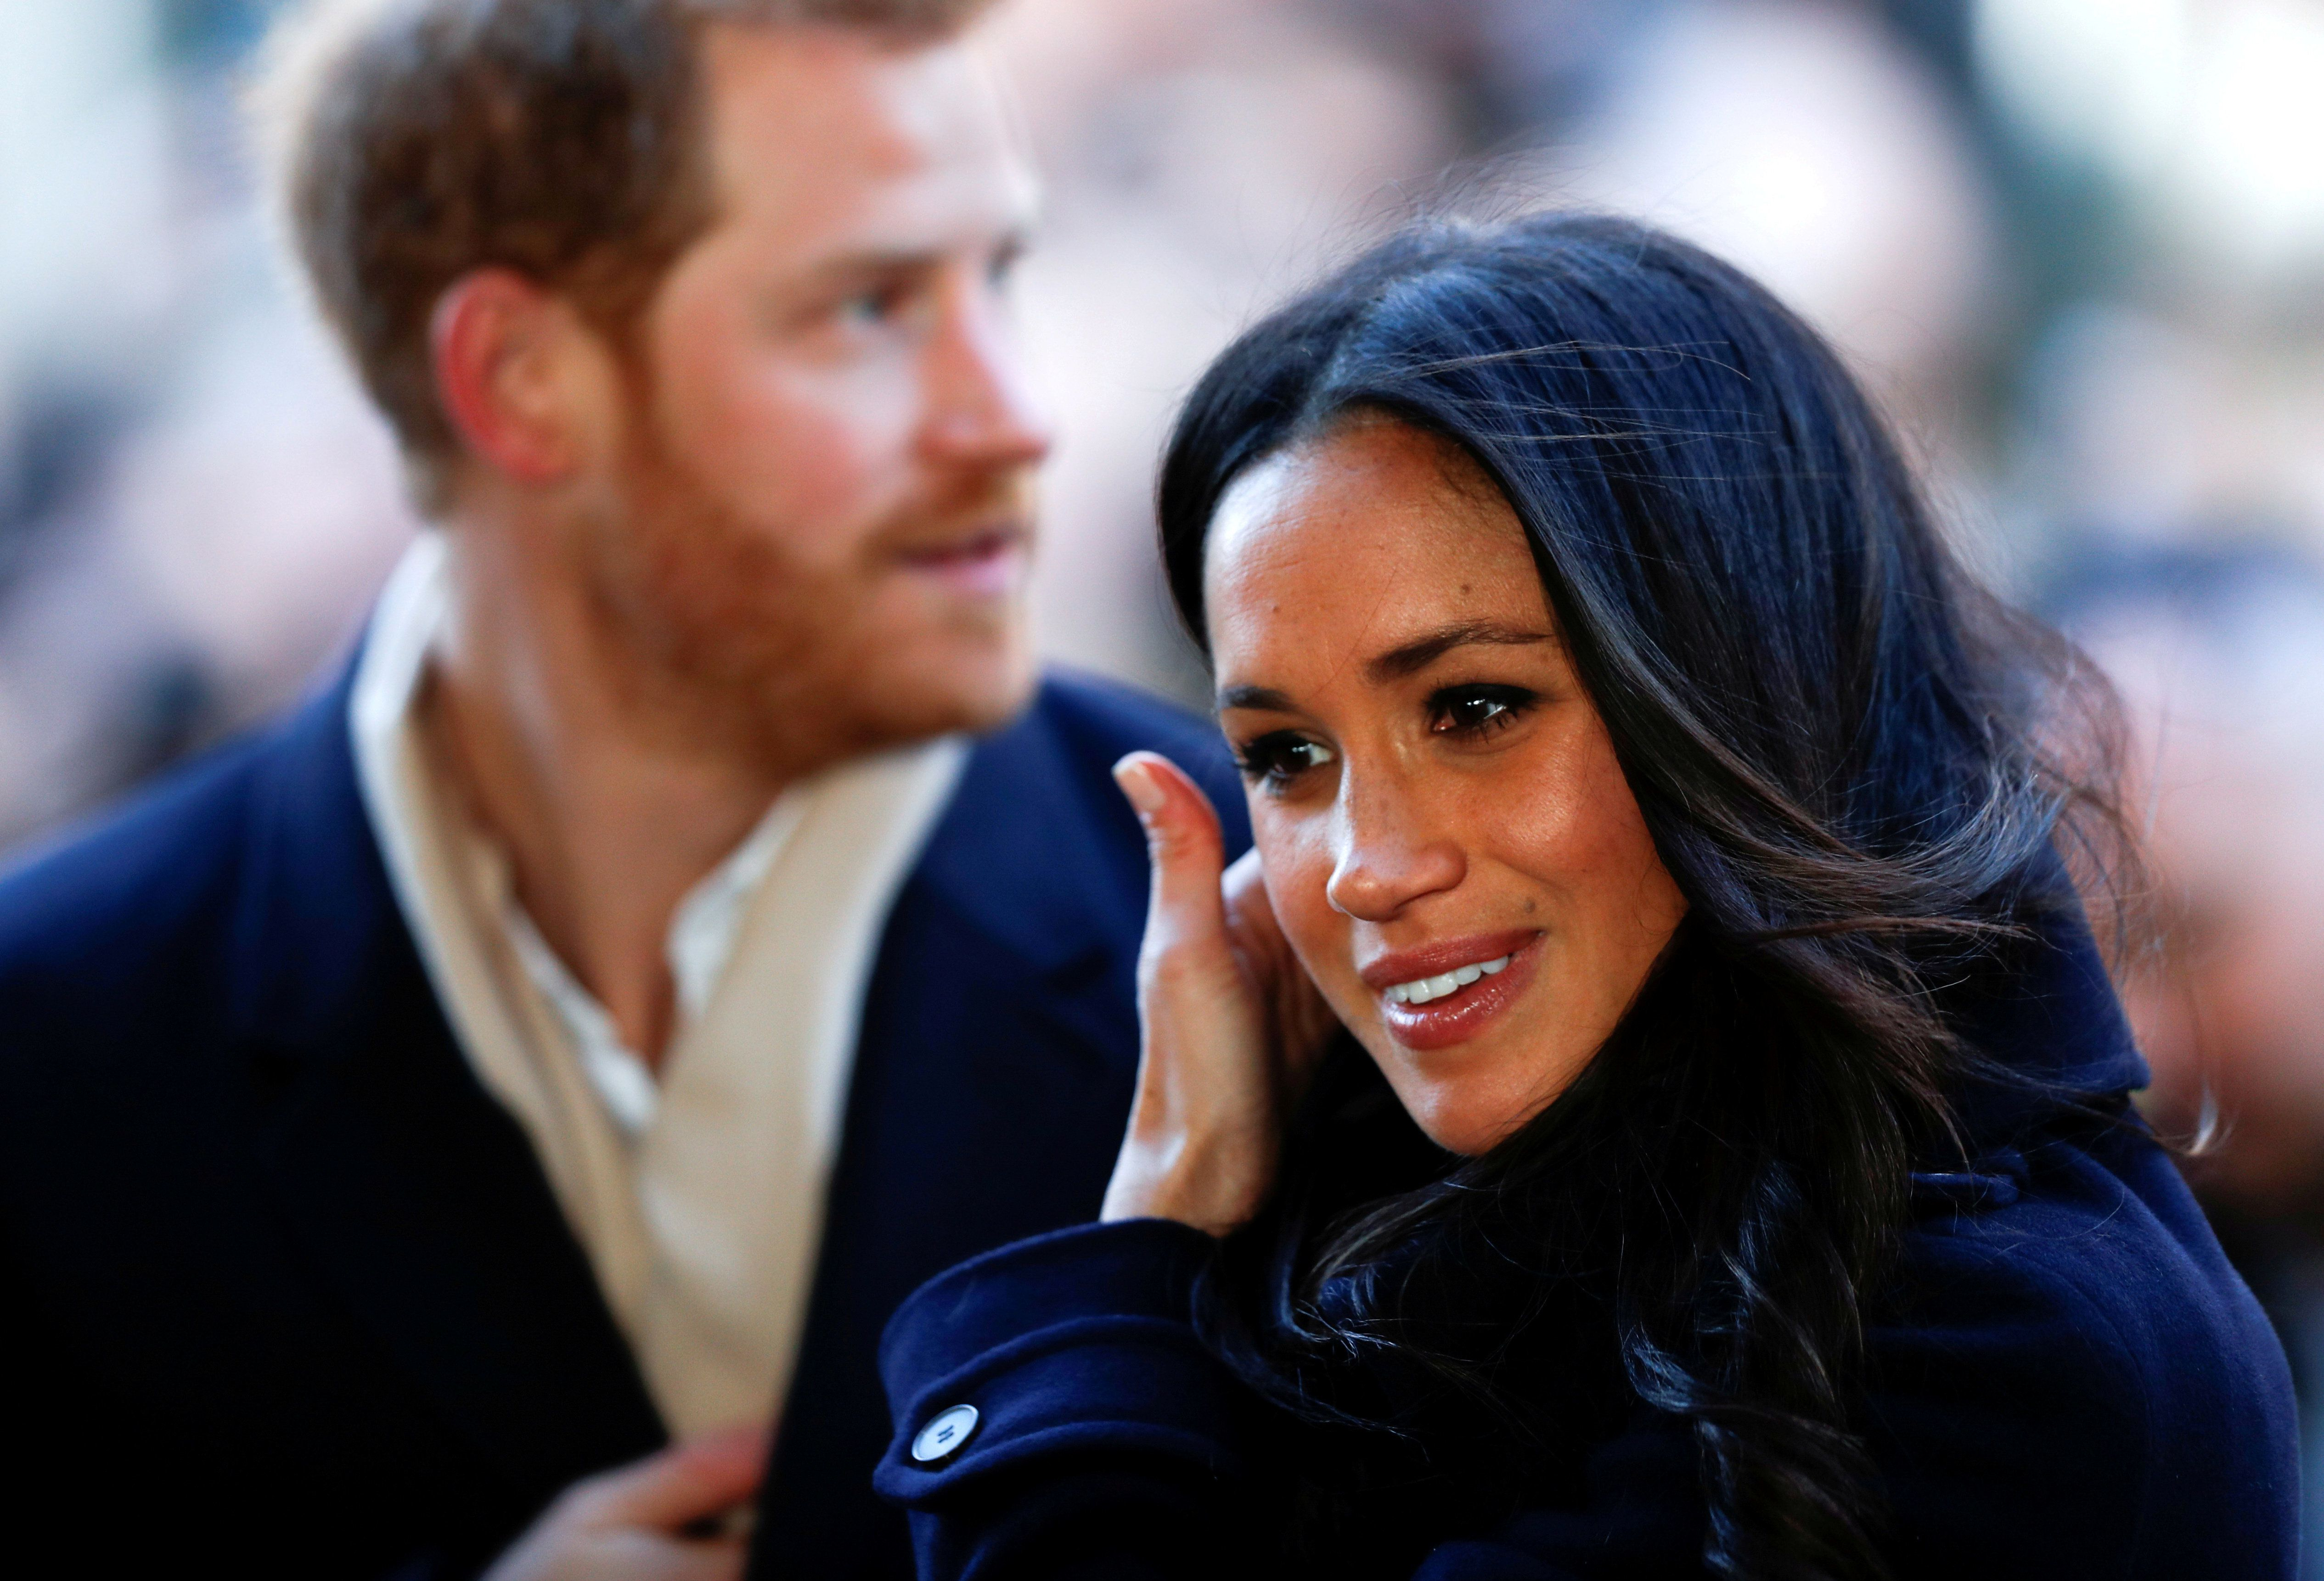 Britain's Prince Harry and his fiancee Meghan Markle arrive at an event in Nottingham, Britain, December 1, 2017. REUTERS/Adrian Dennis/Pool     TPX IMAGES OF THE DAY